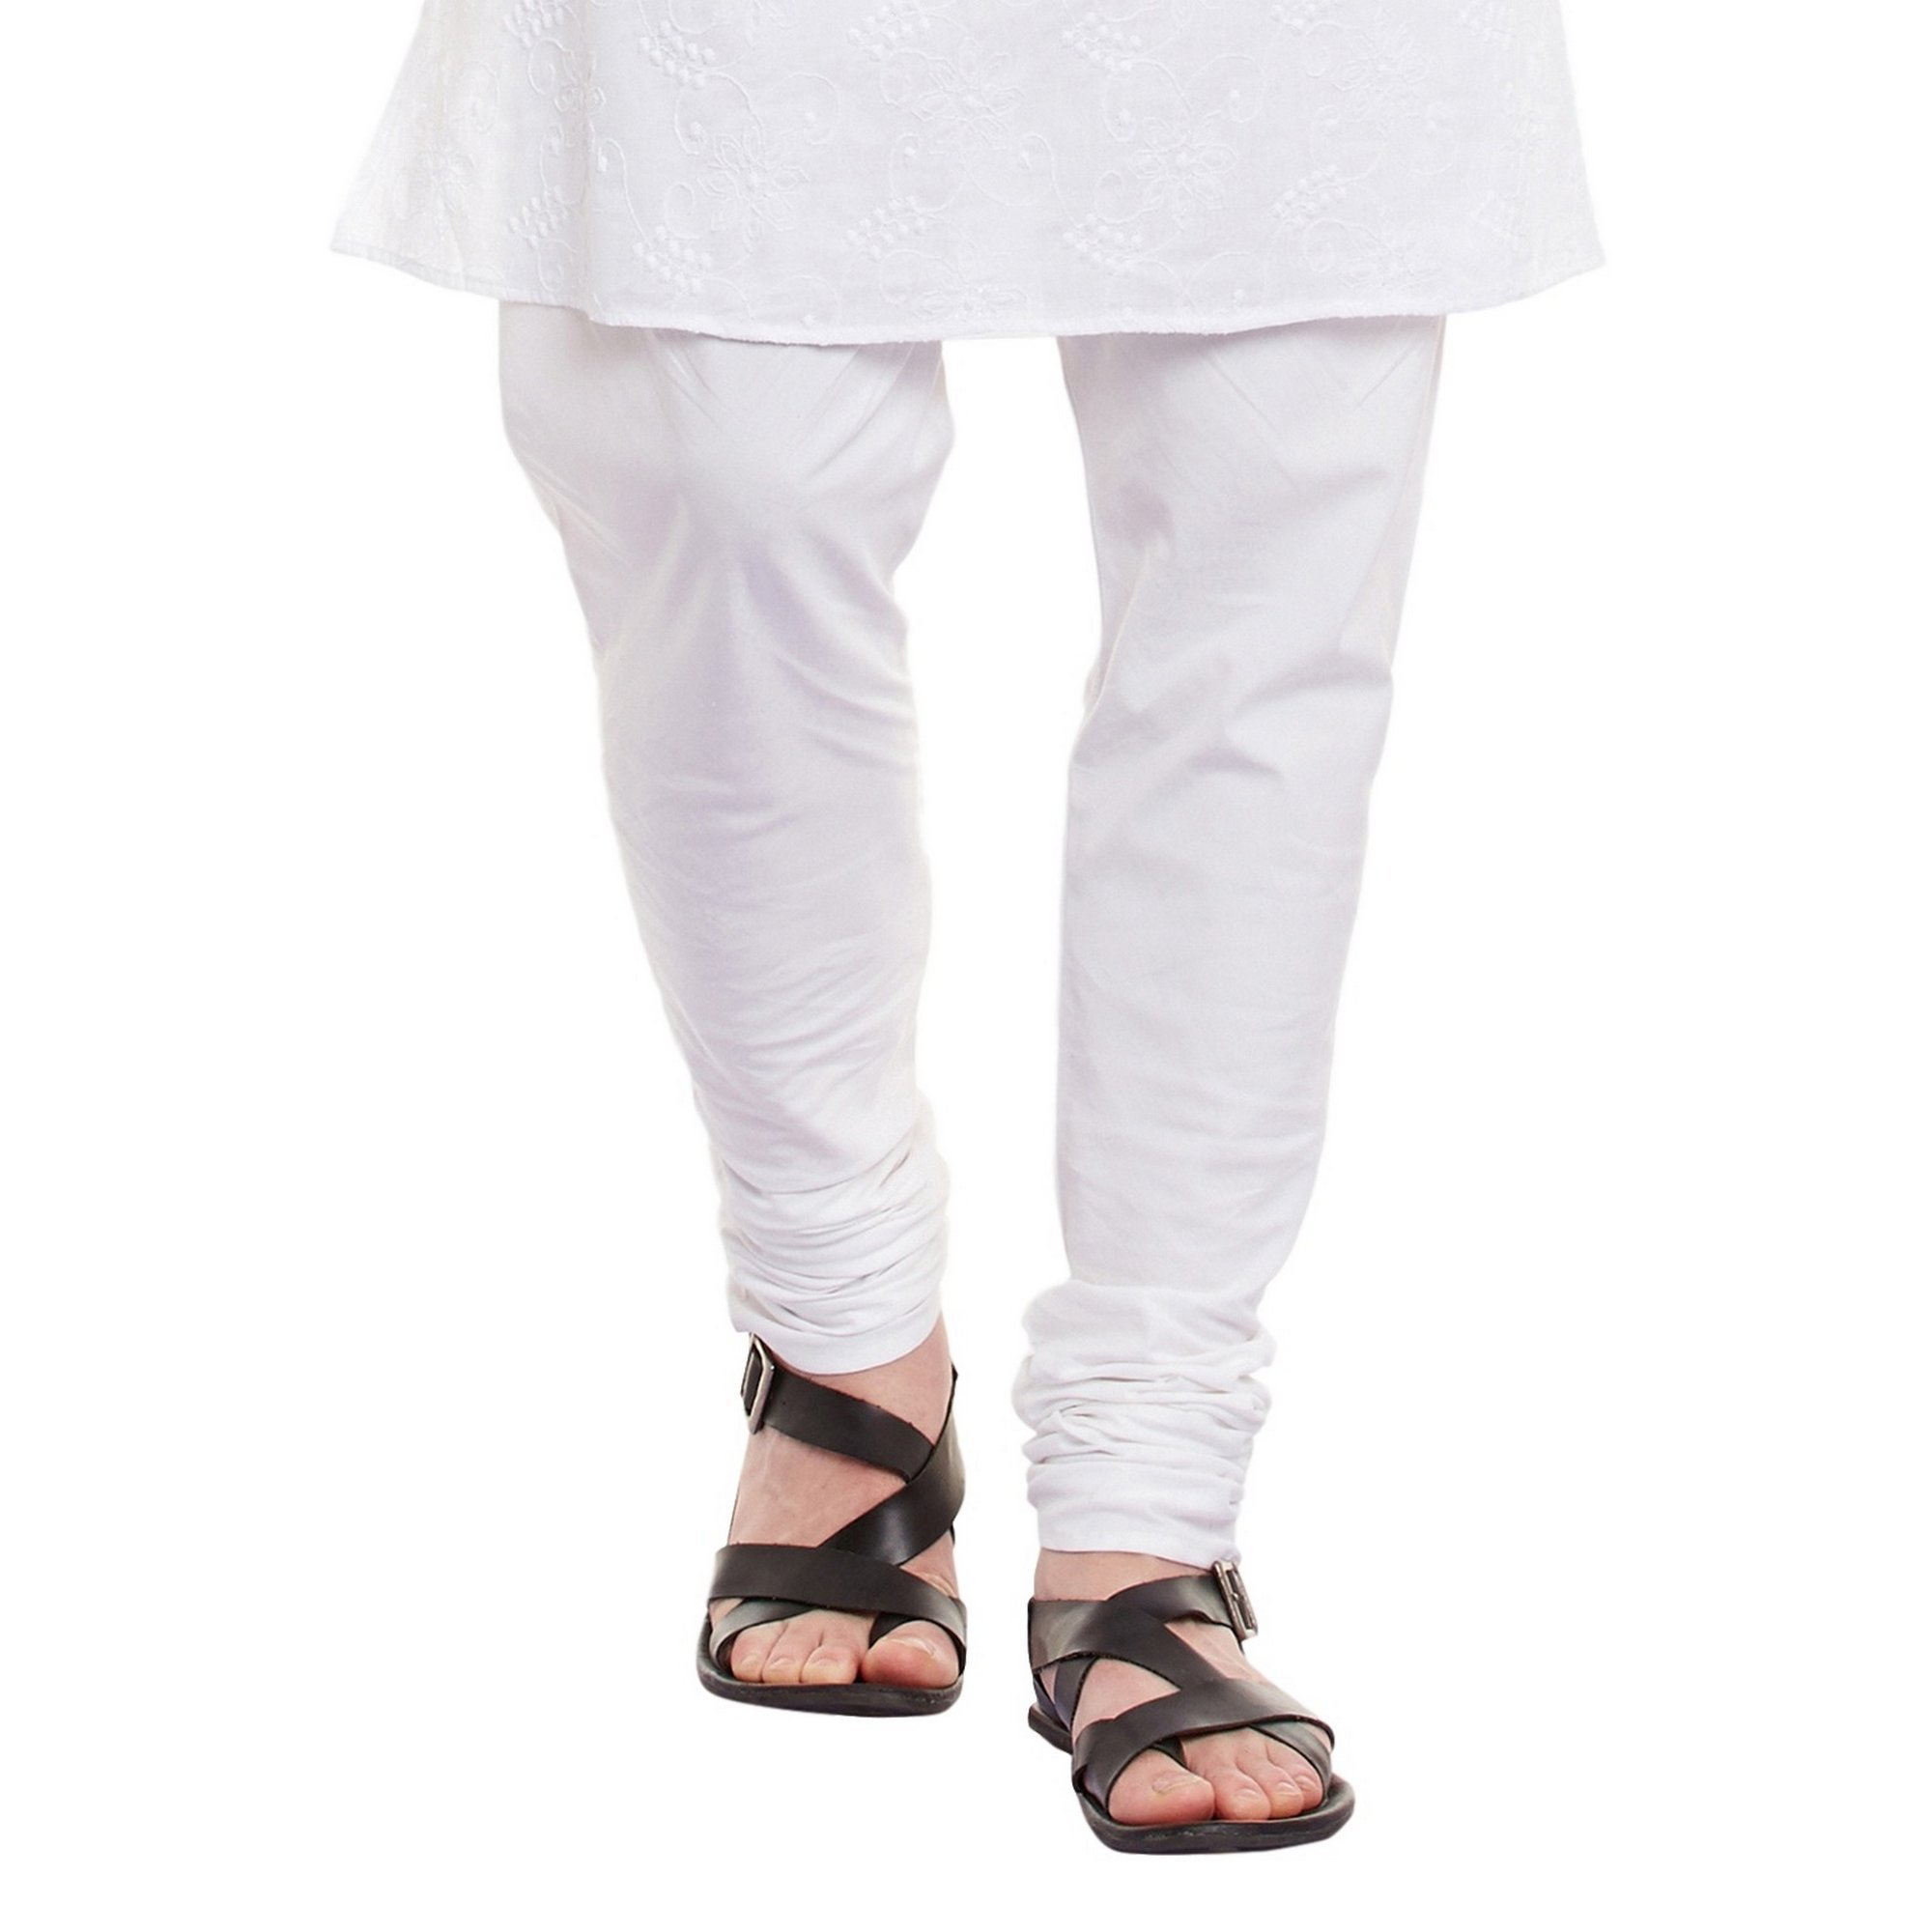 ShalinIndia Mens Embroidered Cutwork Cotton Kurta With Churidar Pajama Trousers Machine Embroidery,White Chest Size: 42 Inch by ShalinIndia (Image #6)